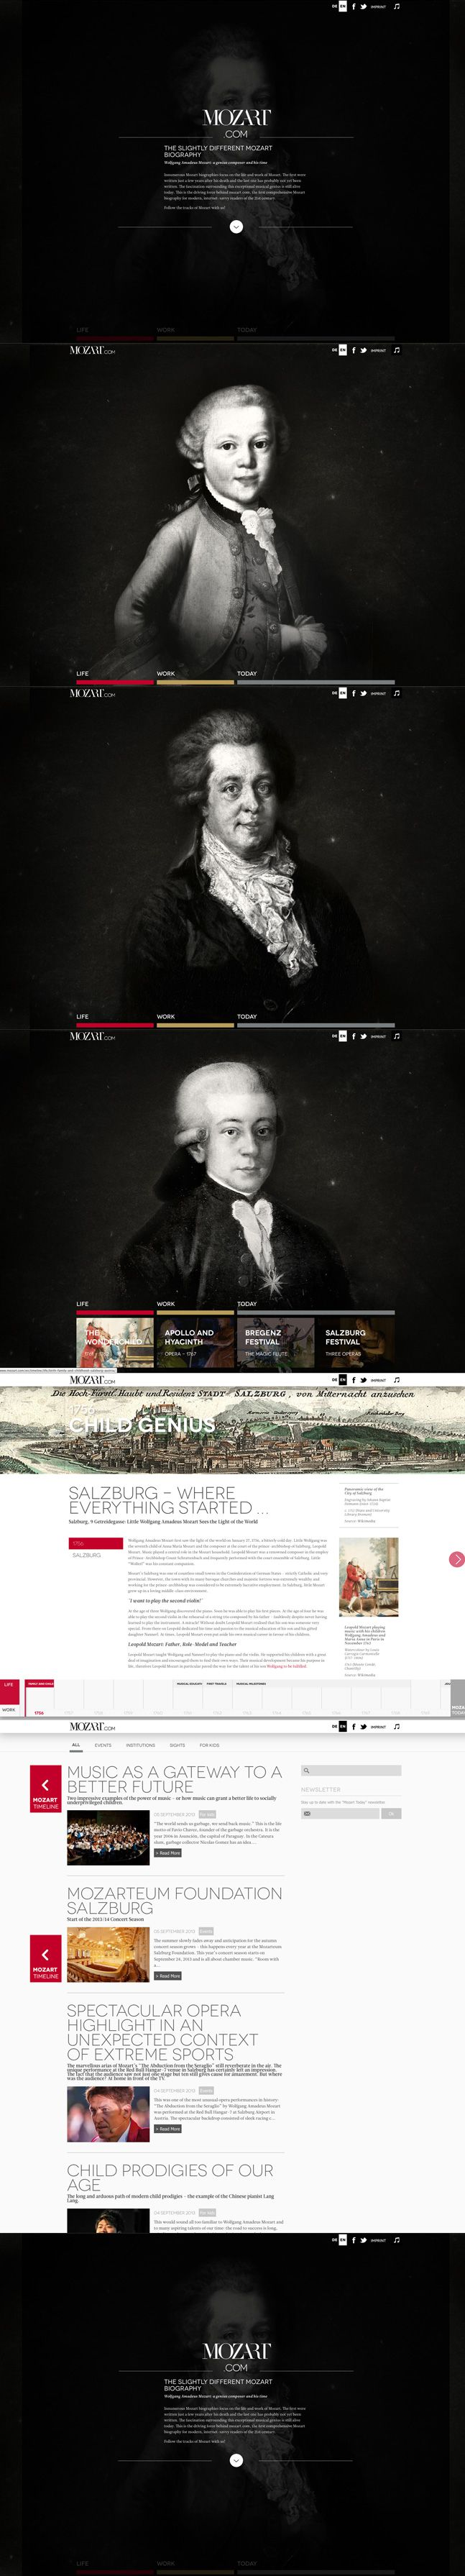 Winner 9 September 2013 mozart.com by seso media group gmbh http://www.cssdesignawards.com/css-web-design-award-winner.php?id=22468 The slightly different Mozart biography. #Responsive #Typographic #Scroll